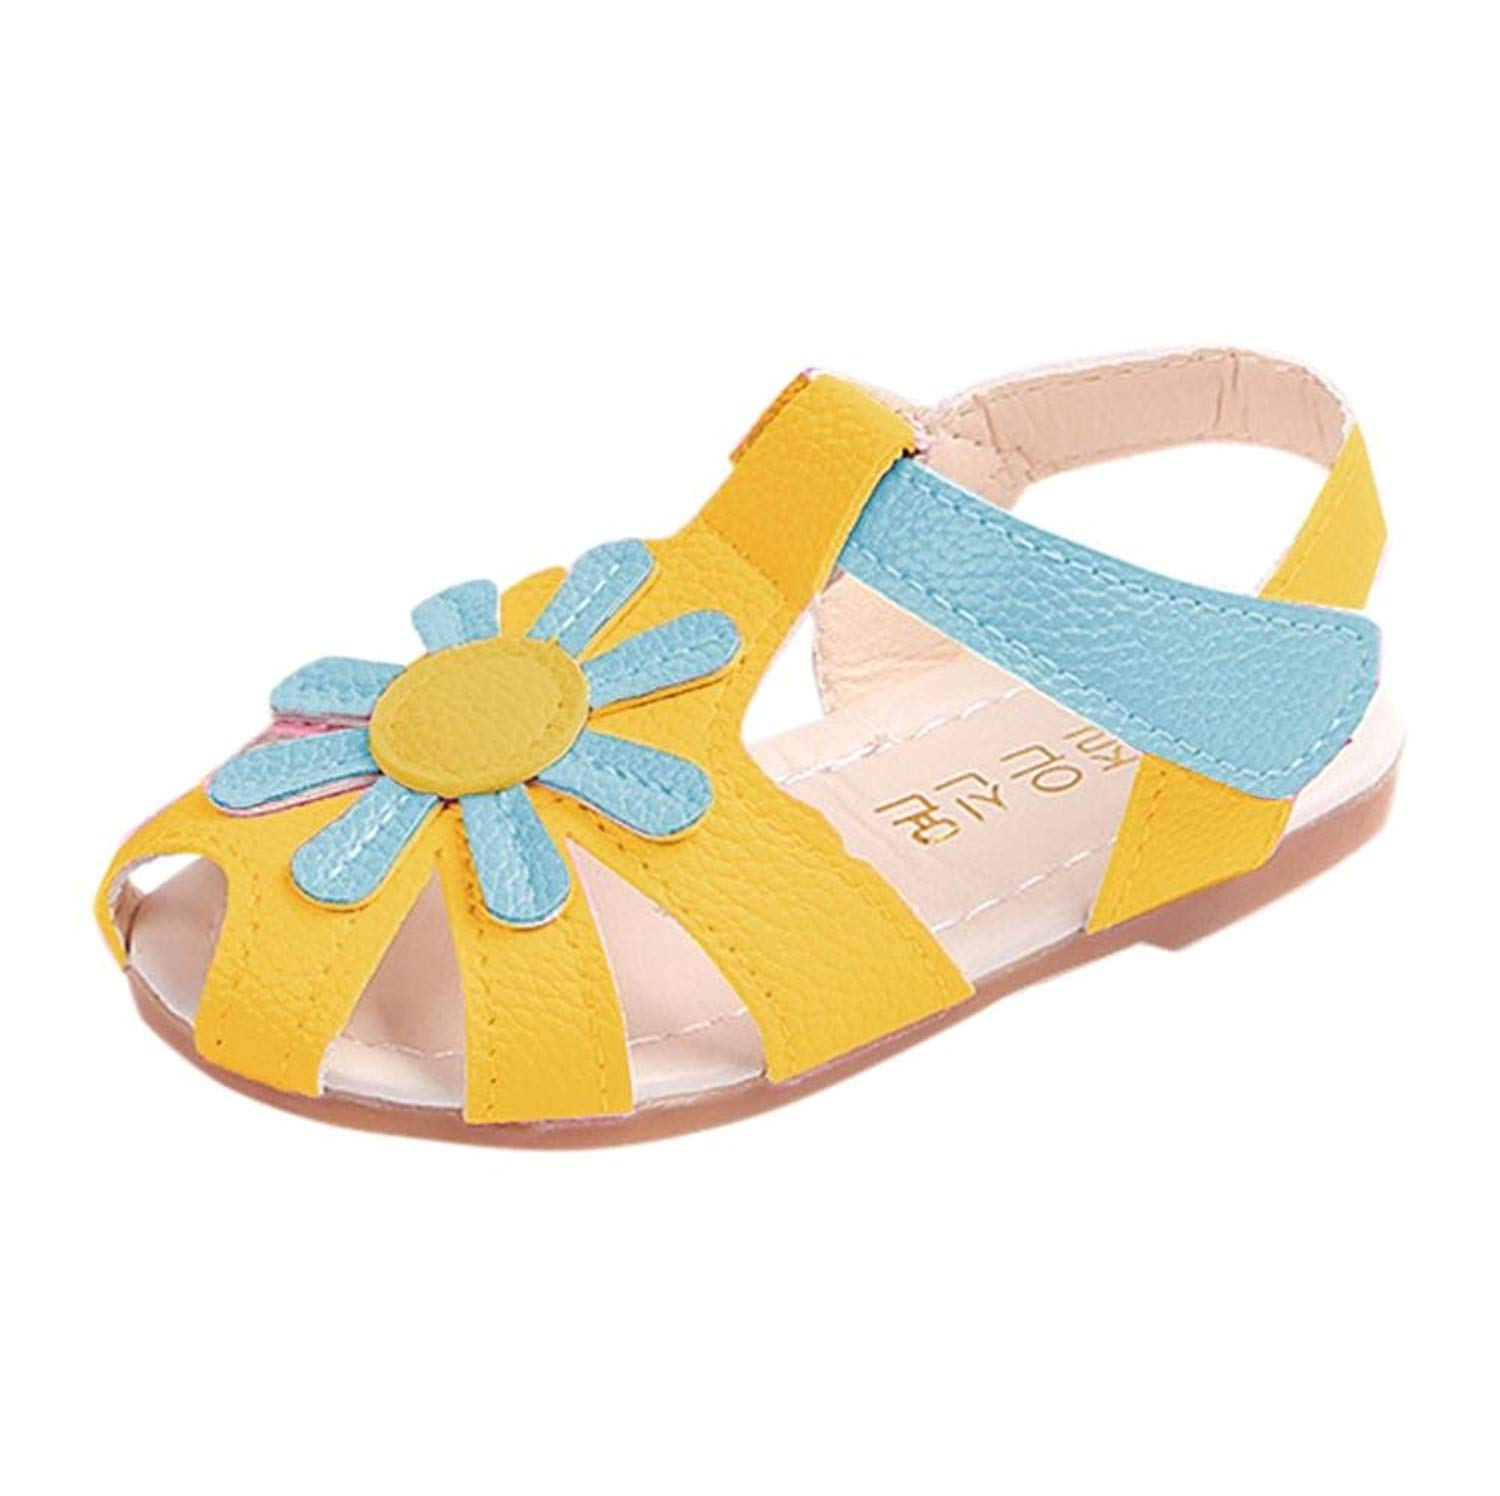 e0bfc6385c90d Get Quotations · WOCACHI Baby Girls Shoes Toddler Baby Girl Sandals  Sunflower Sole Children Princess Sandals Shoes Beach